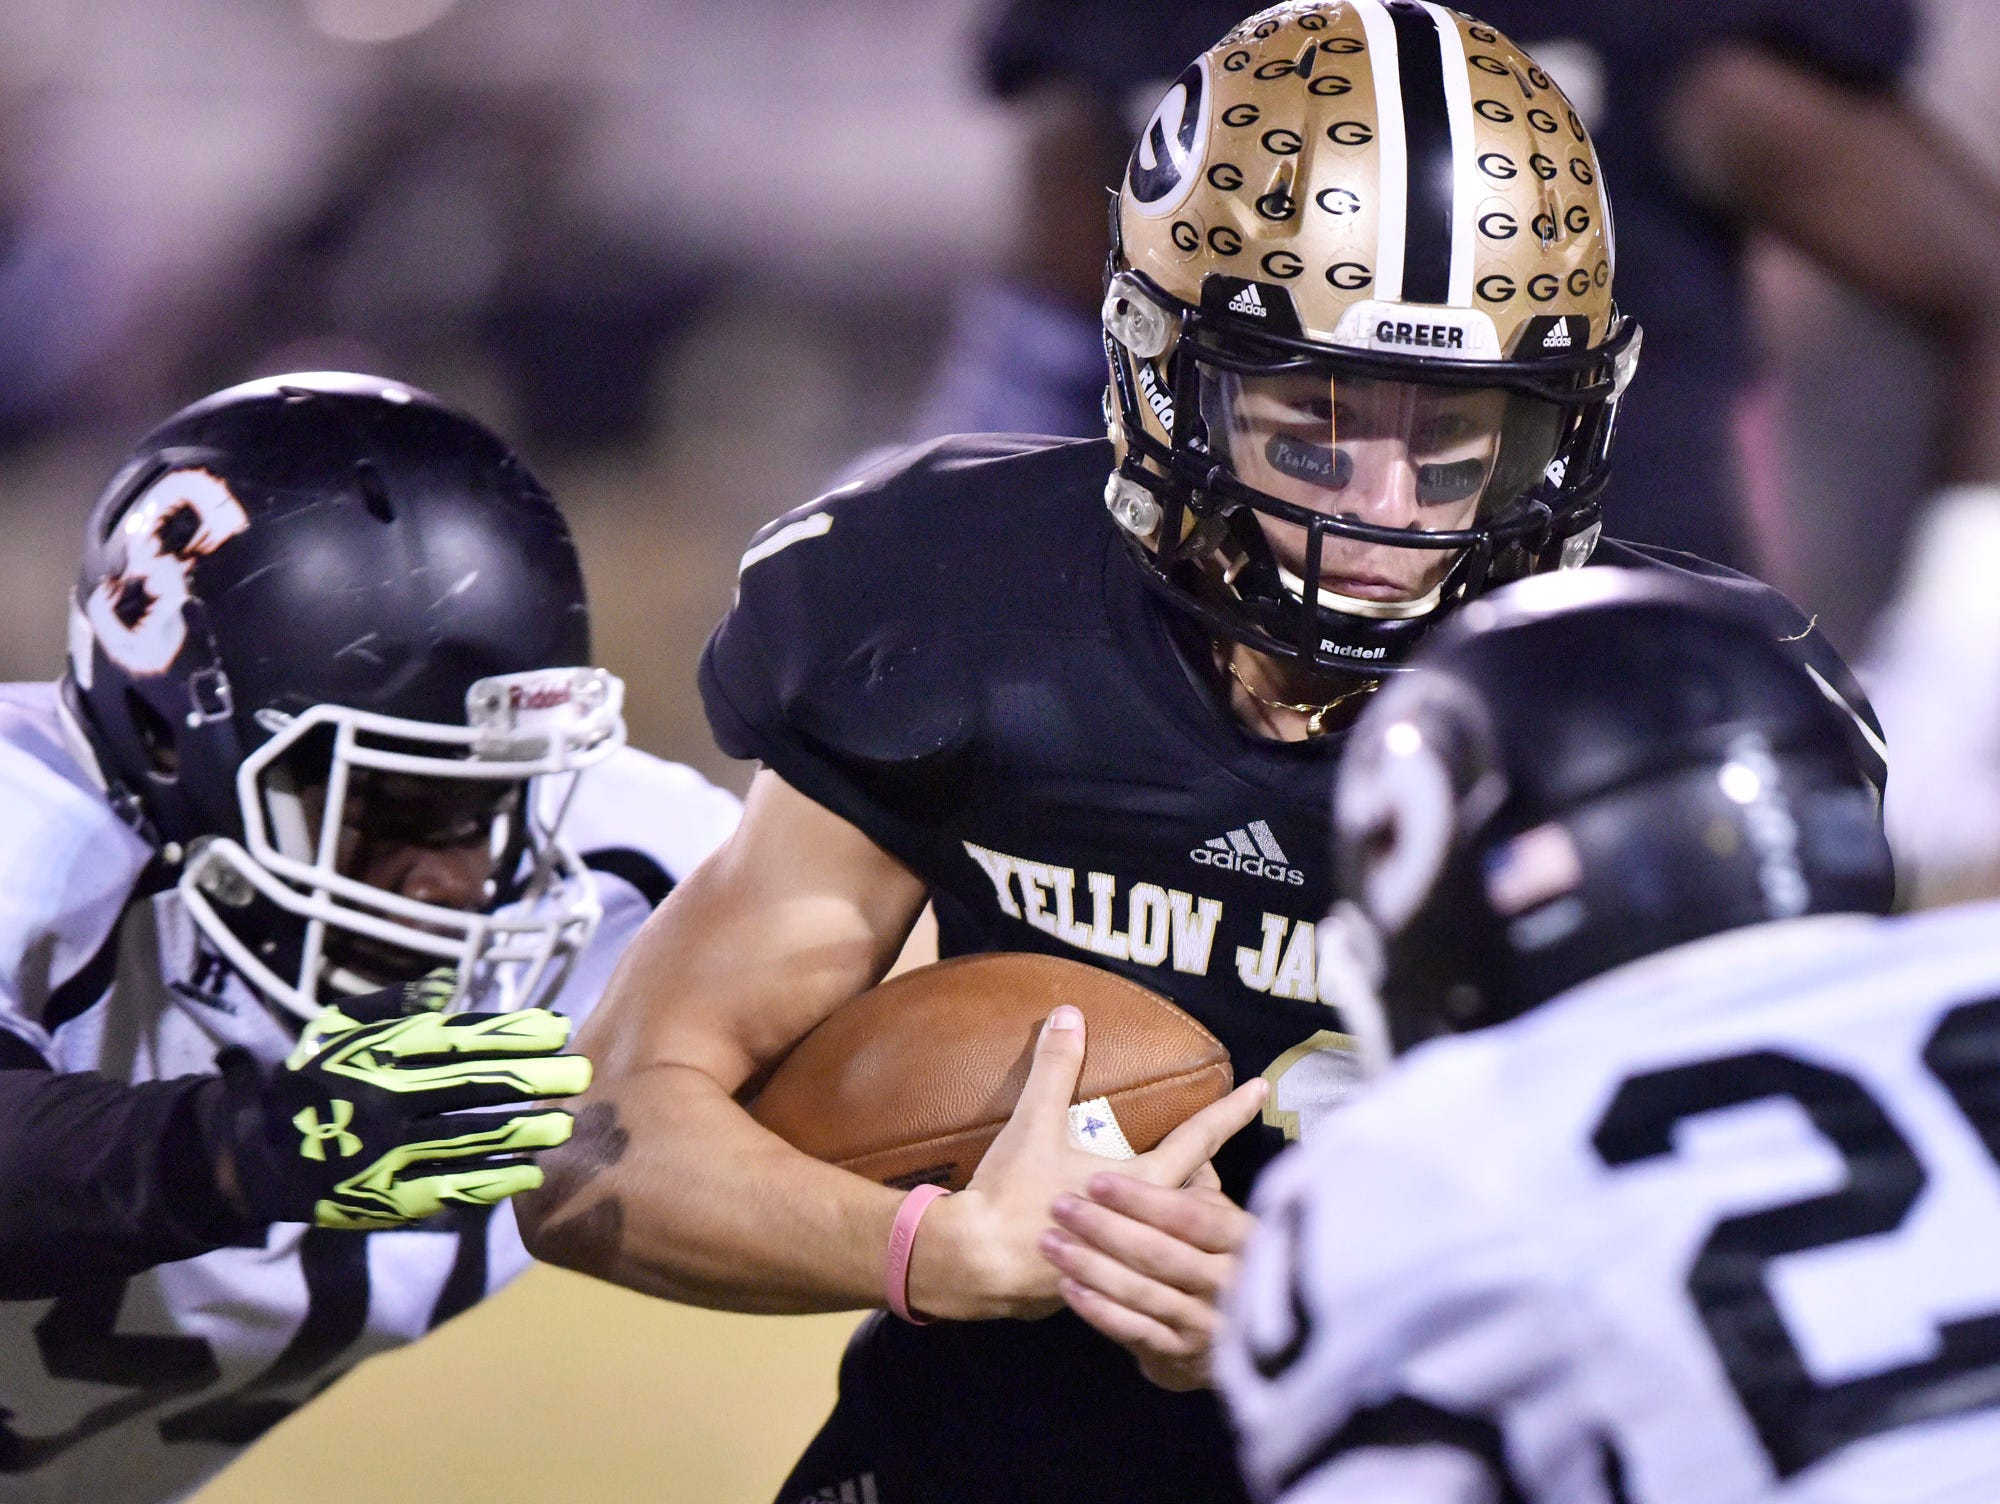 Greer quarterback Mario Cusano (11) is caught by Southside's Deshondre Mills (50).